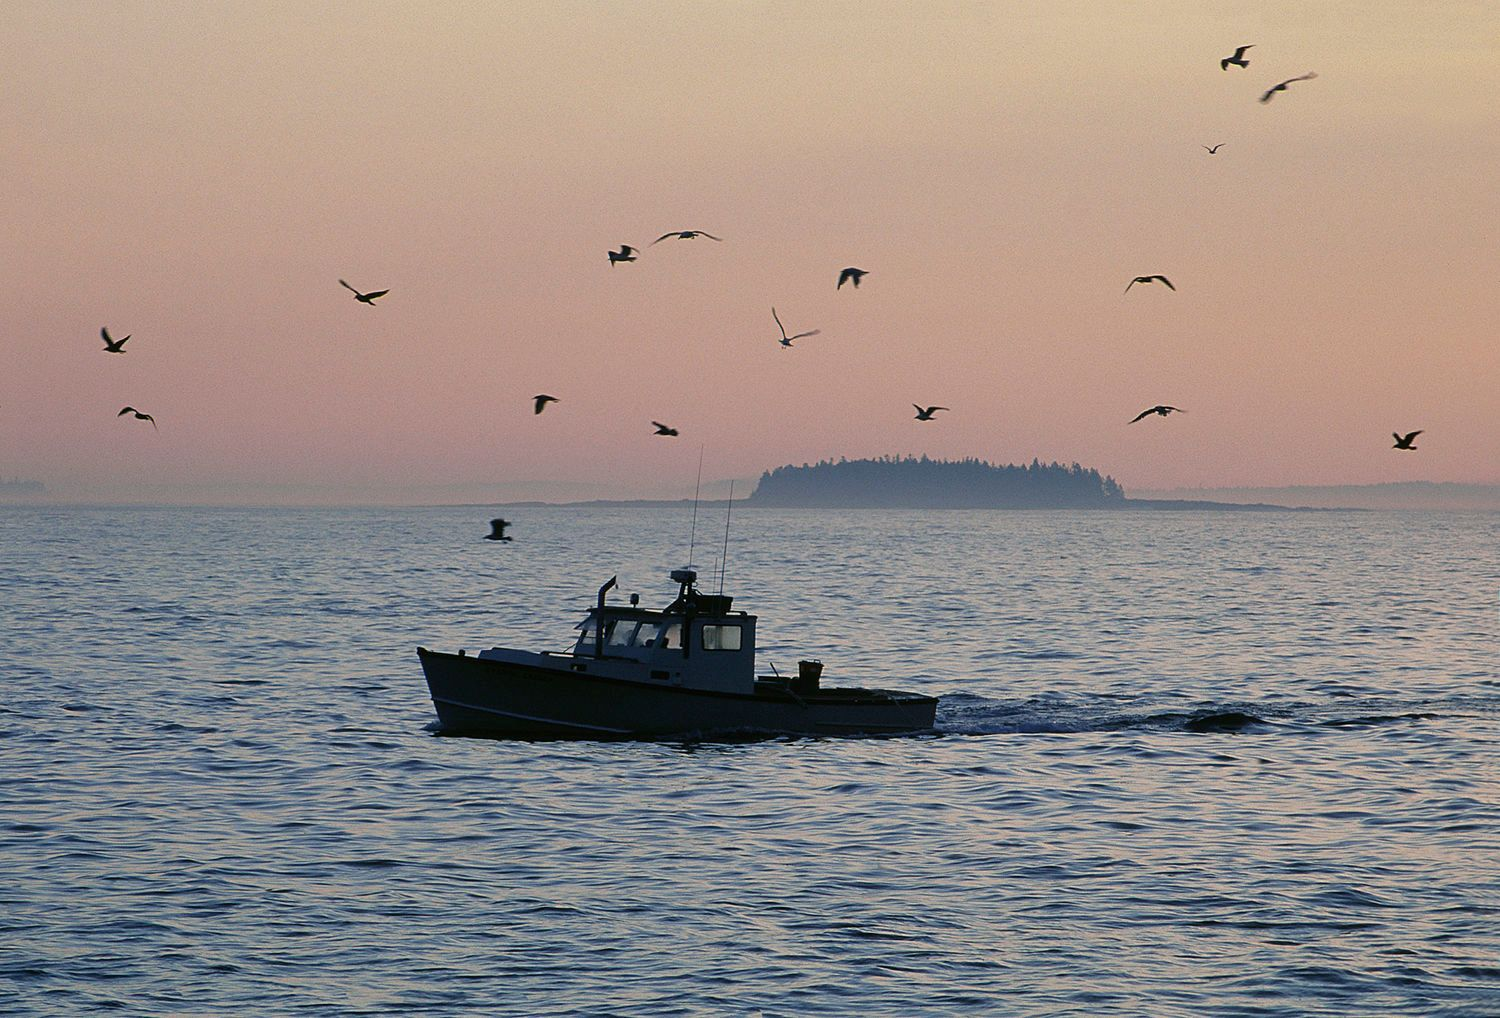 Lobster boat in Mascongus Bay, Maine